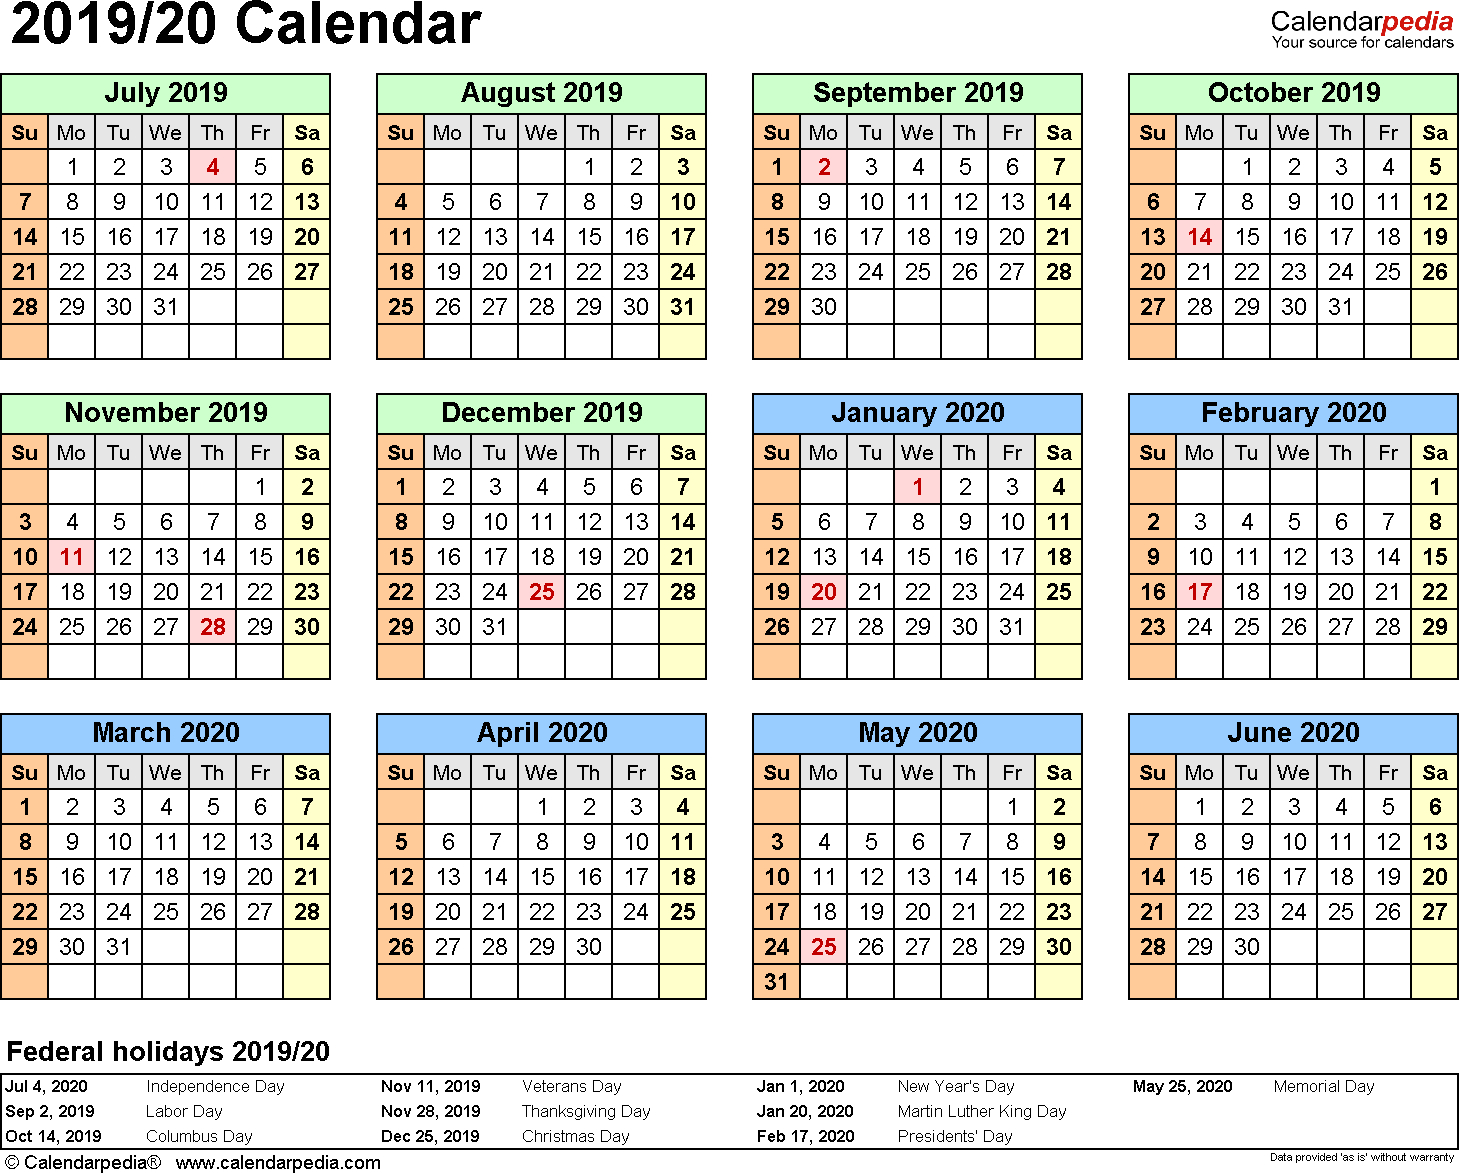 Split Year Calendar 2019/20 (July To June) - Pdf Templates regarding Week At A Glance 2019-2020 Printable Free